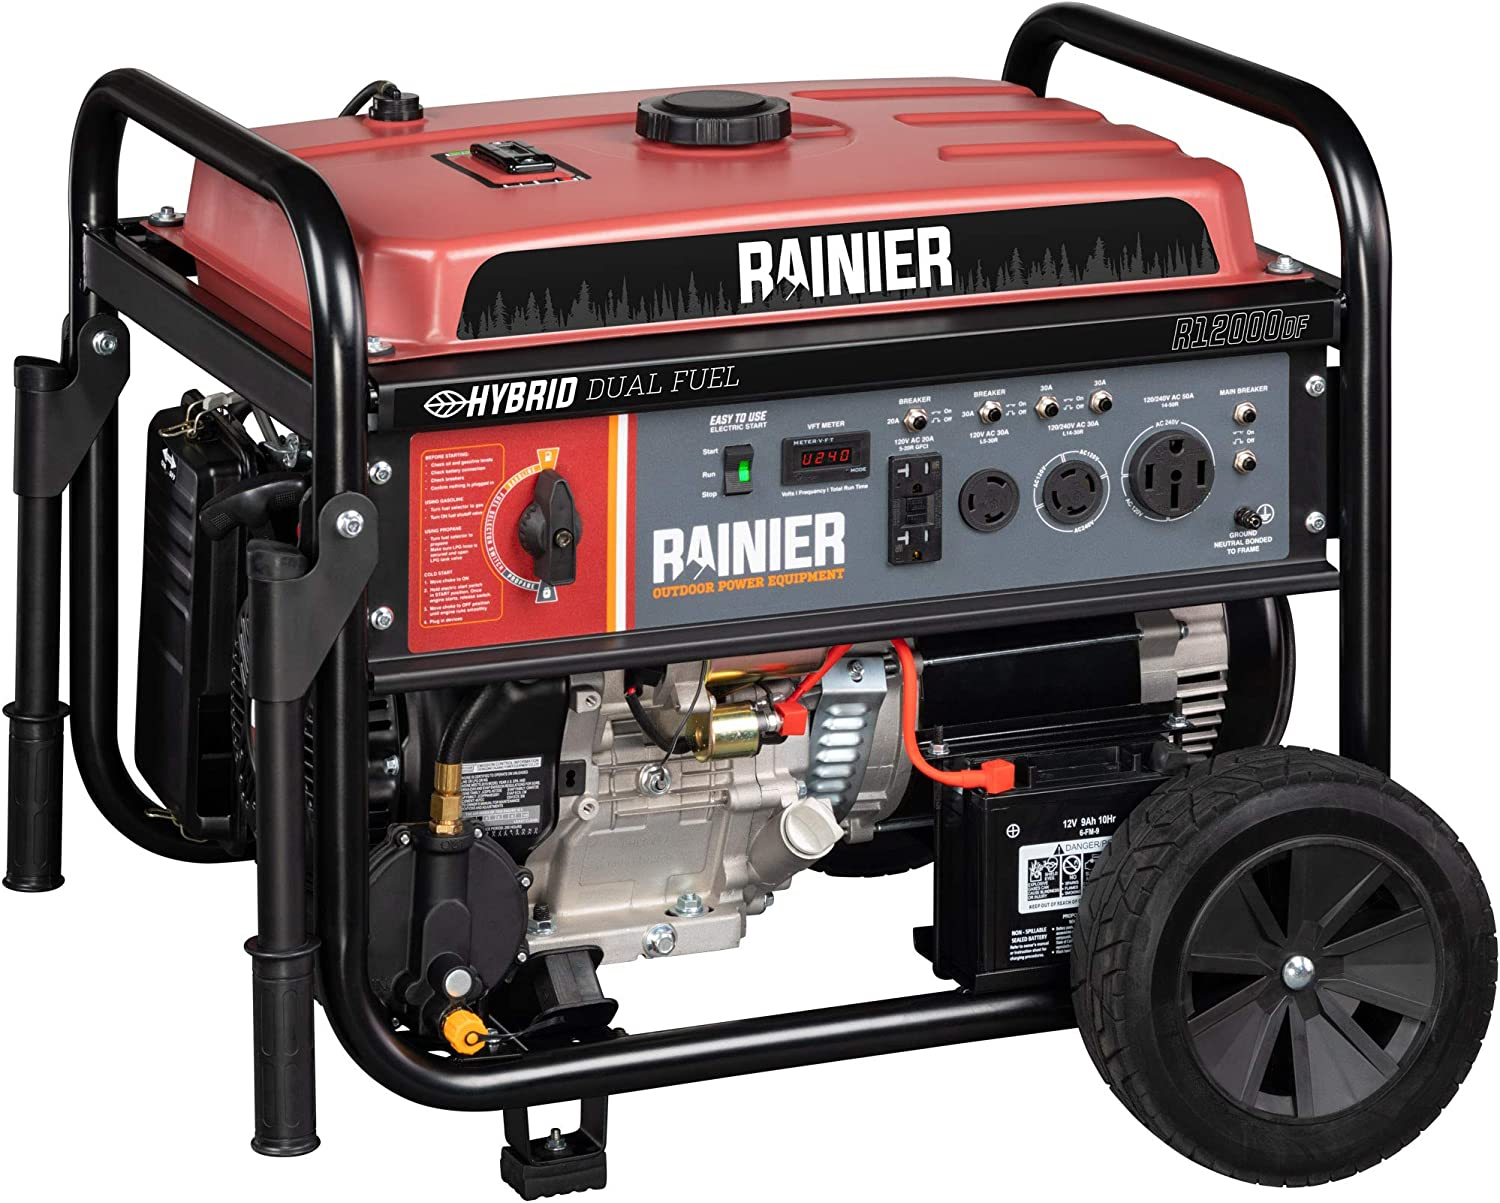 Best dual fuel portable generators